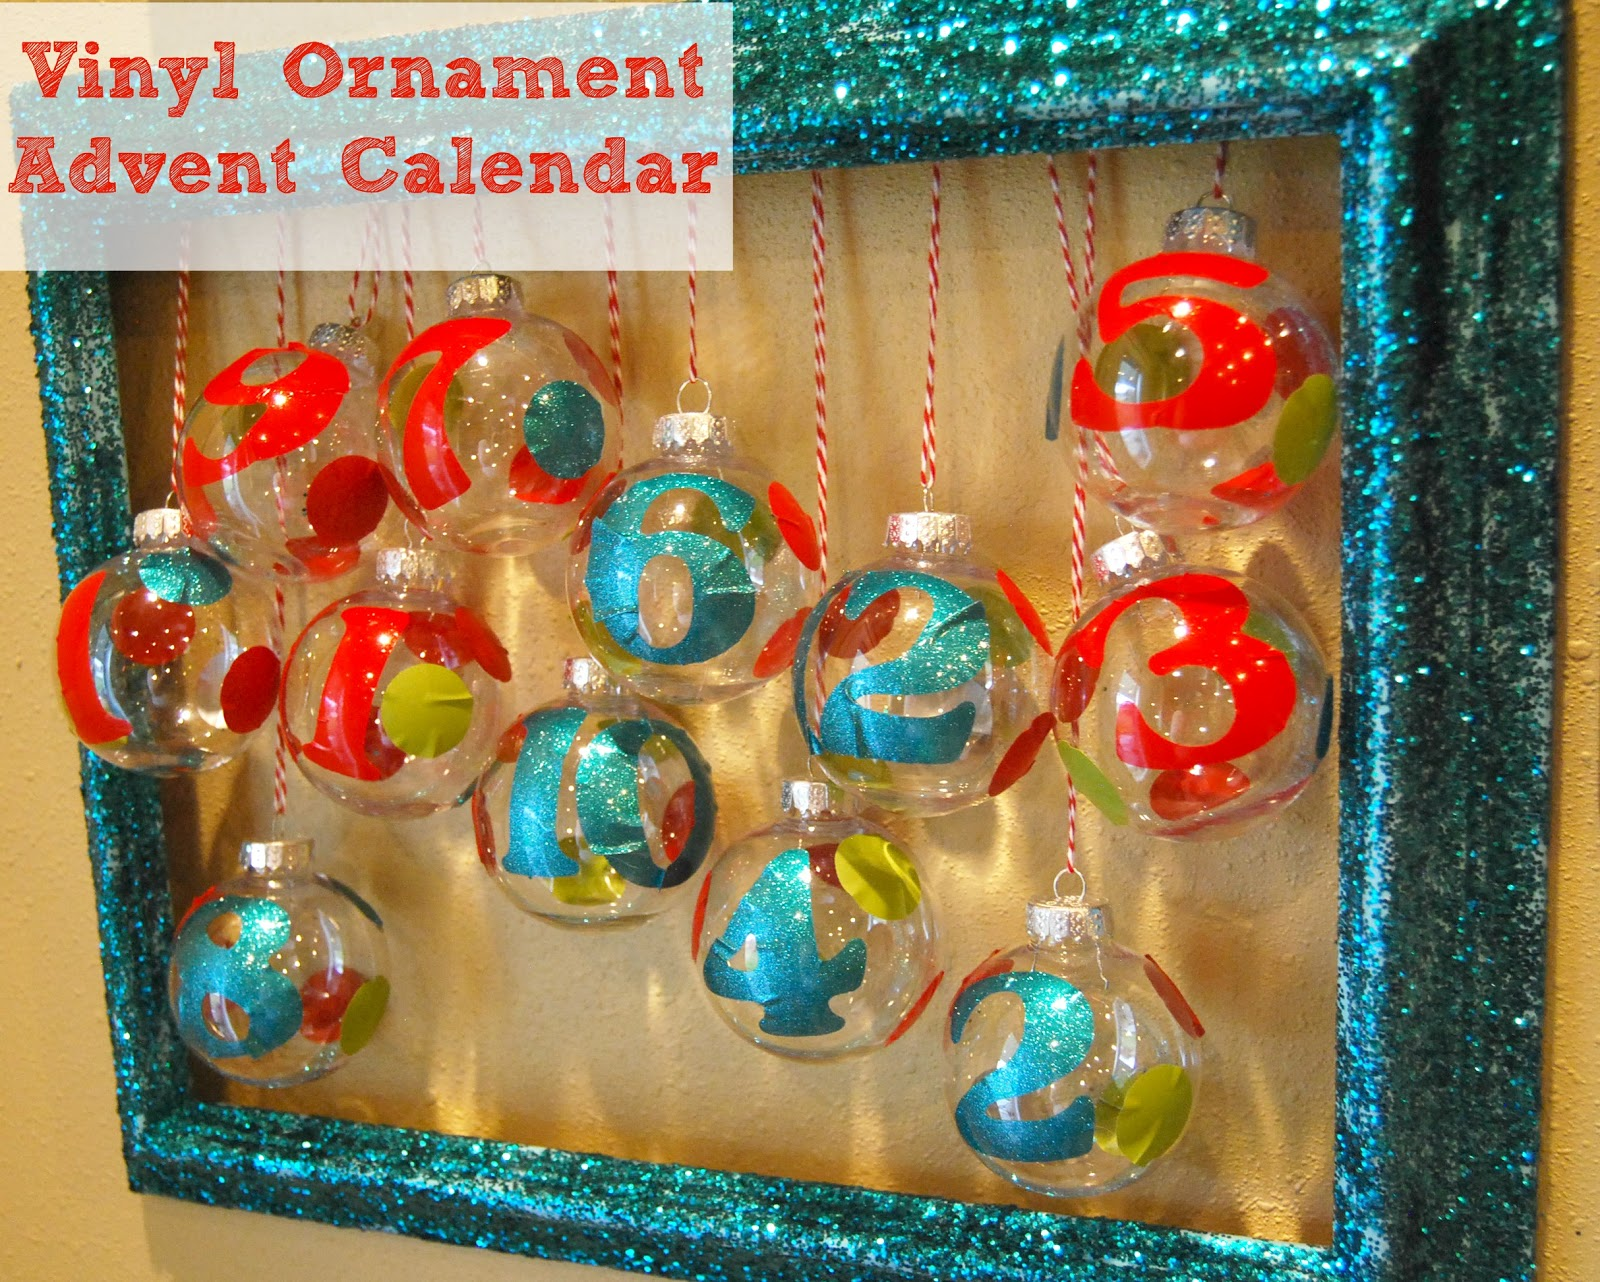 Advent Calendar Ideas For Girls : Vinyl ornament advent calendar girl loves glam